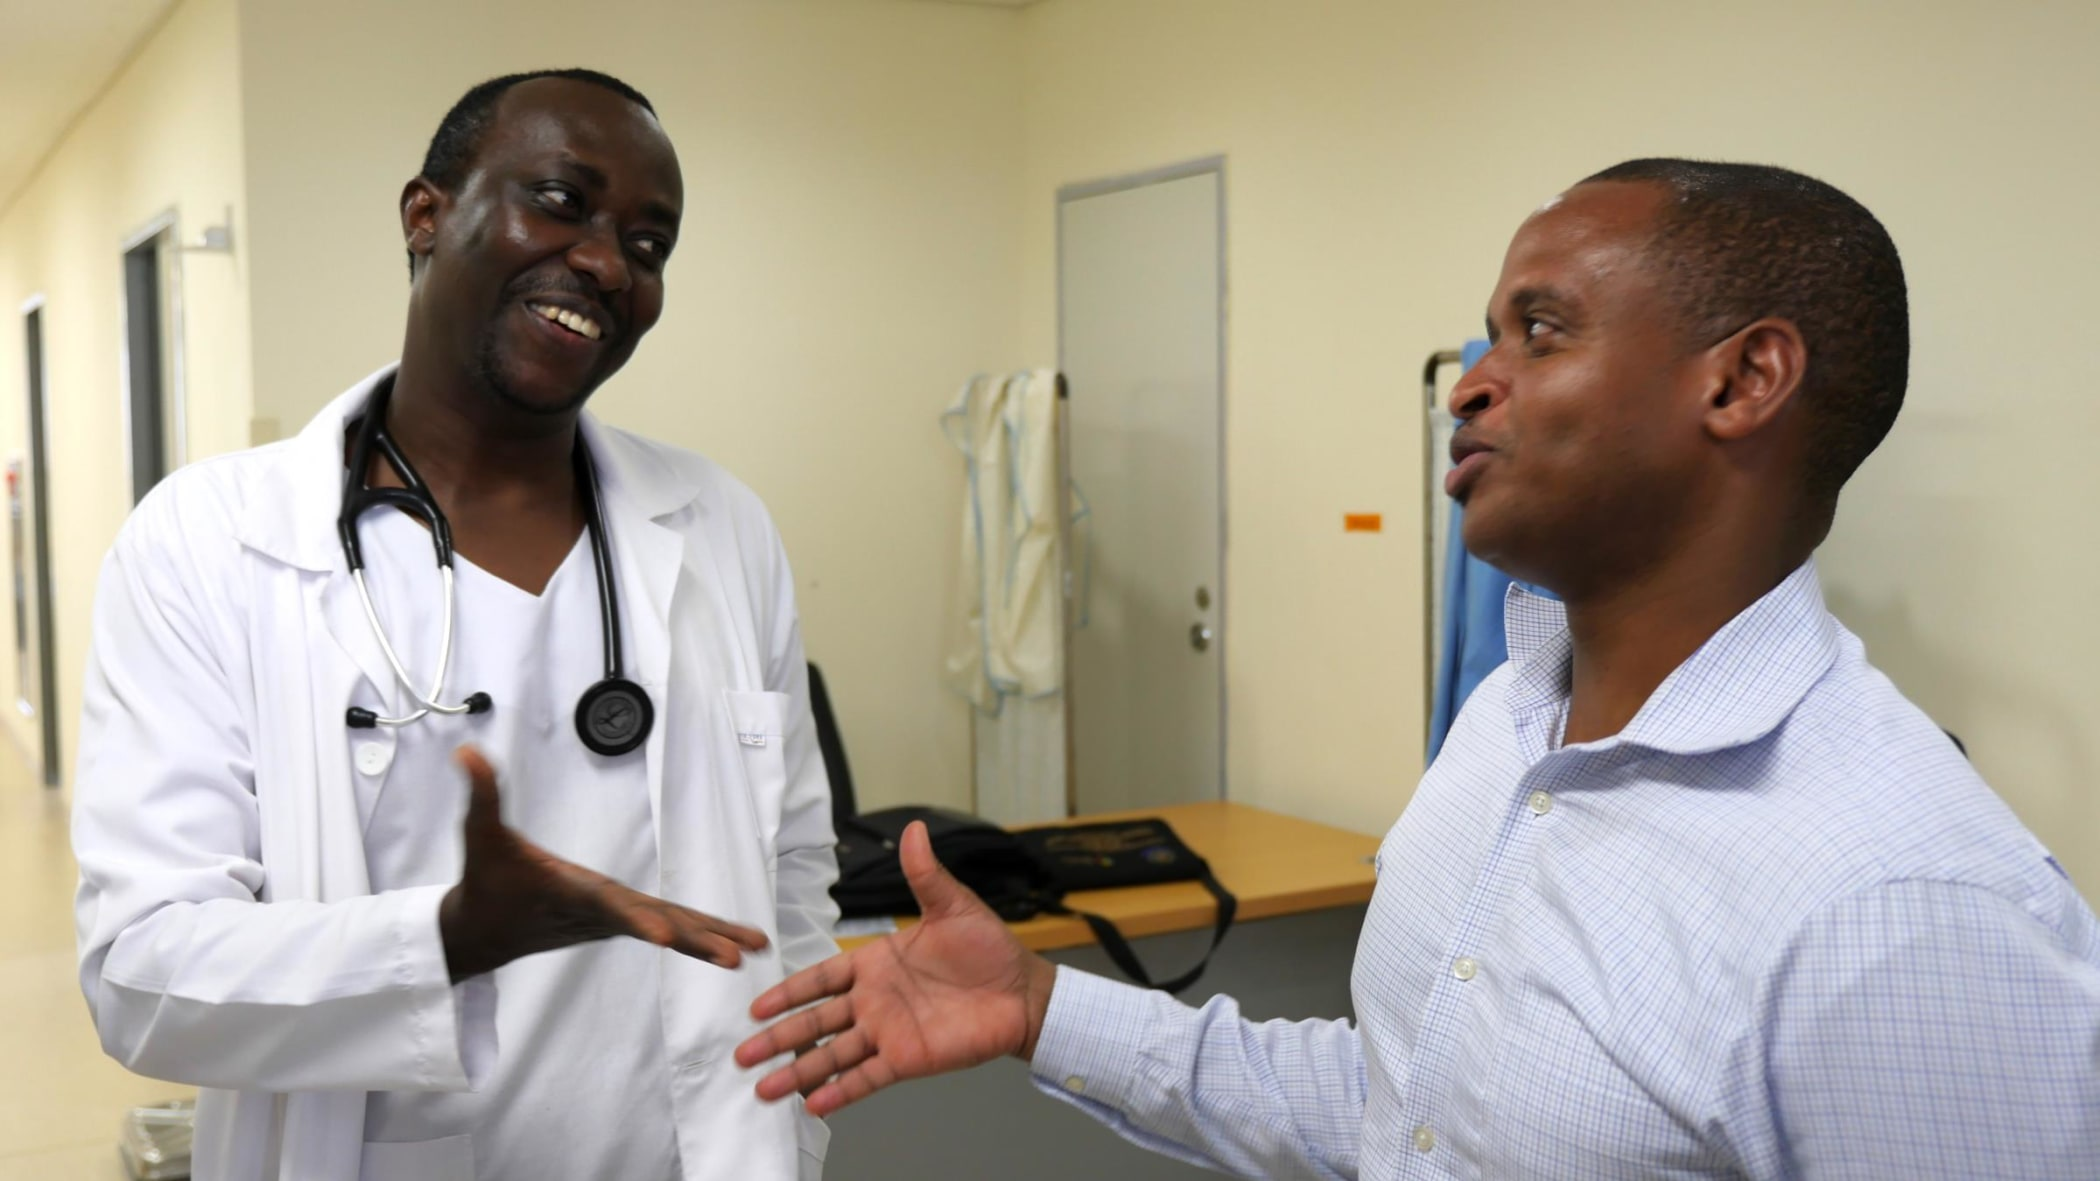 Dr. Pascal Ruggajo, Nephrologist and HOD Internal Medicine at MUHAS and Dr. Frank Minja from Yale shaking hands on future collaborations.